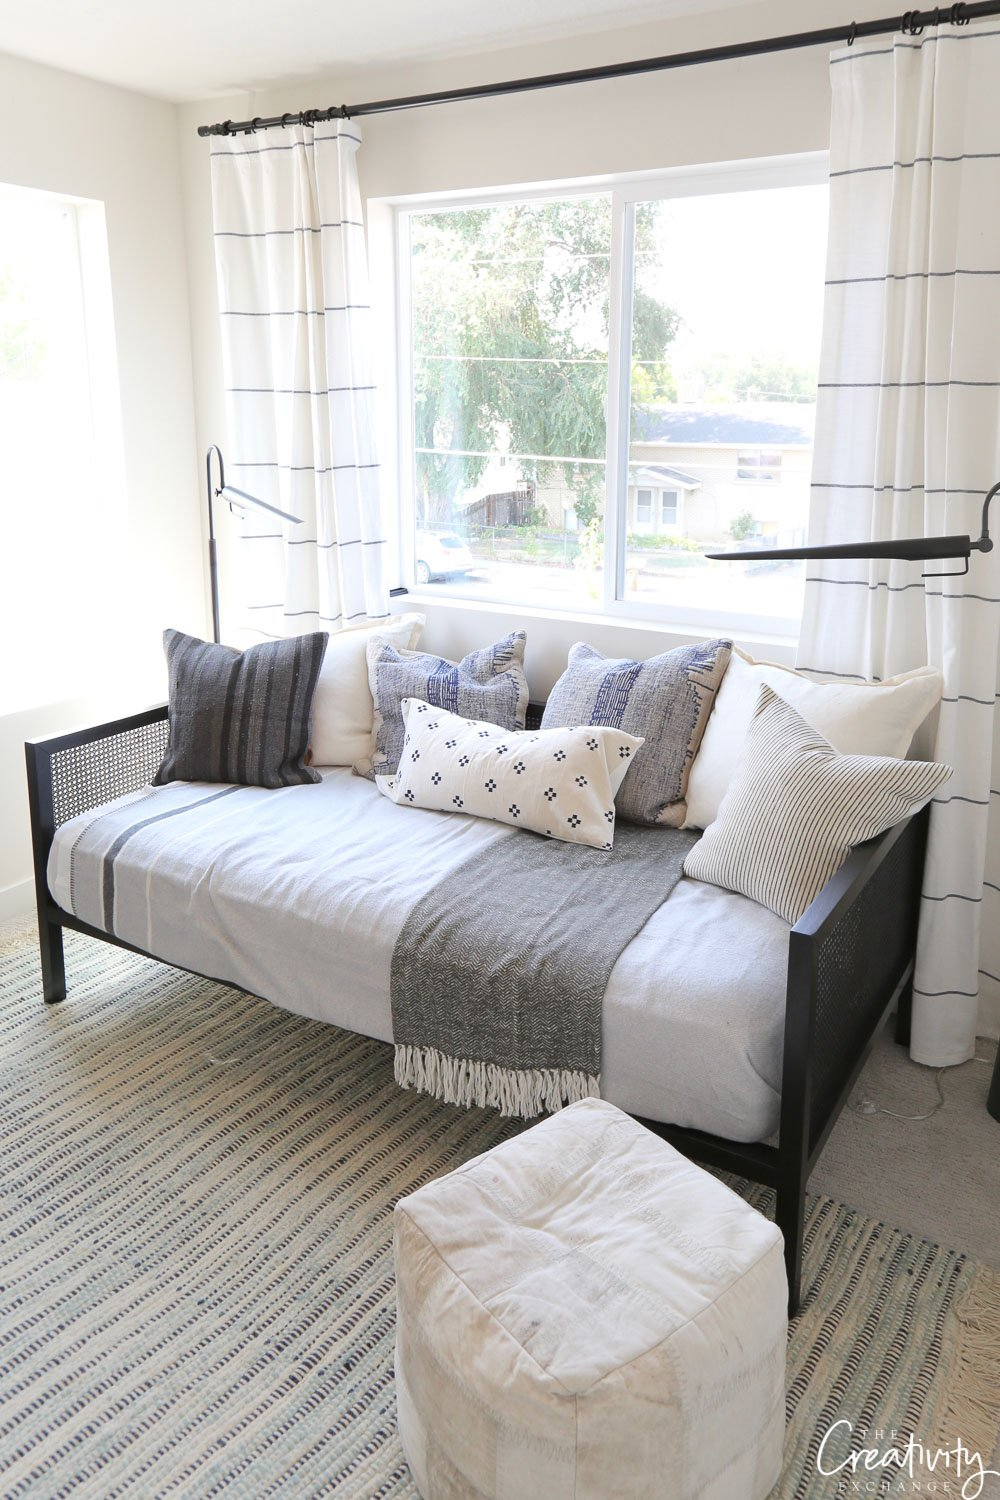 Day bed or sofa